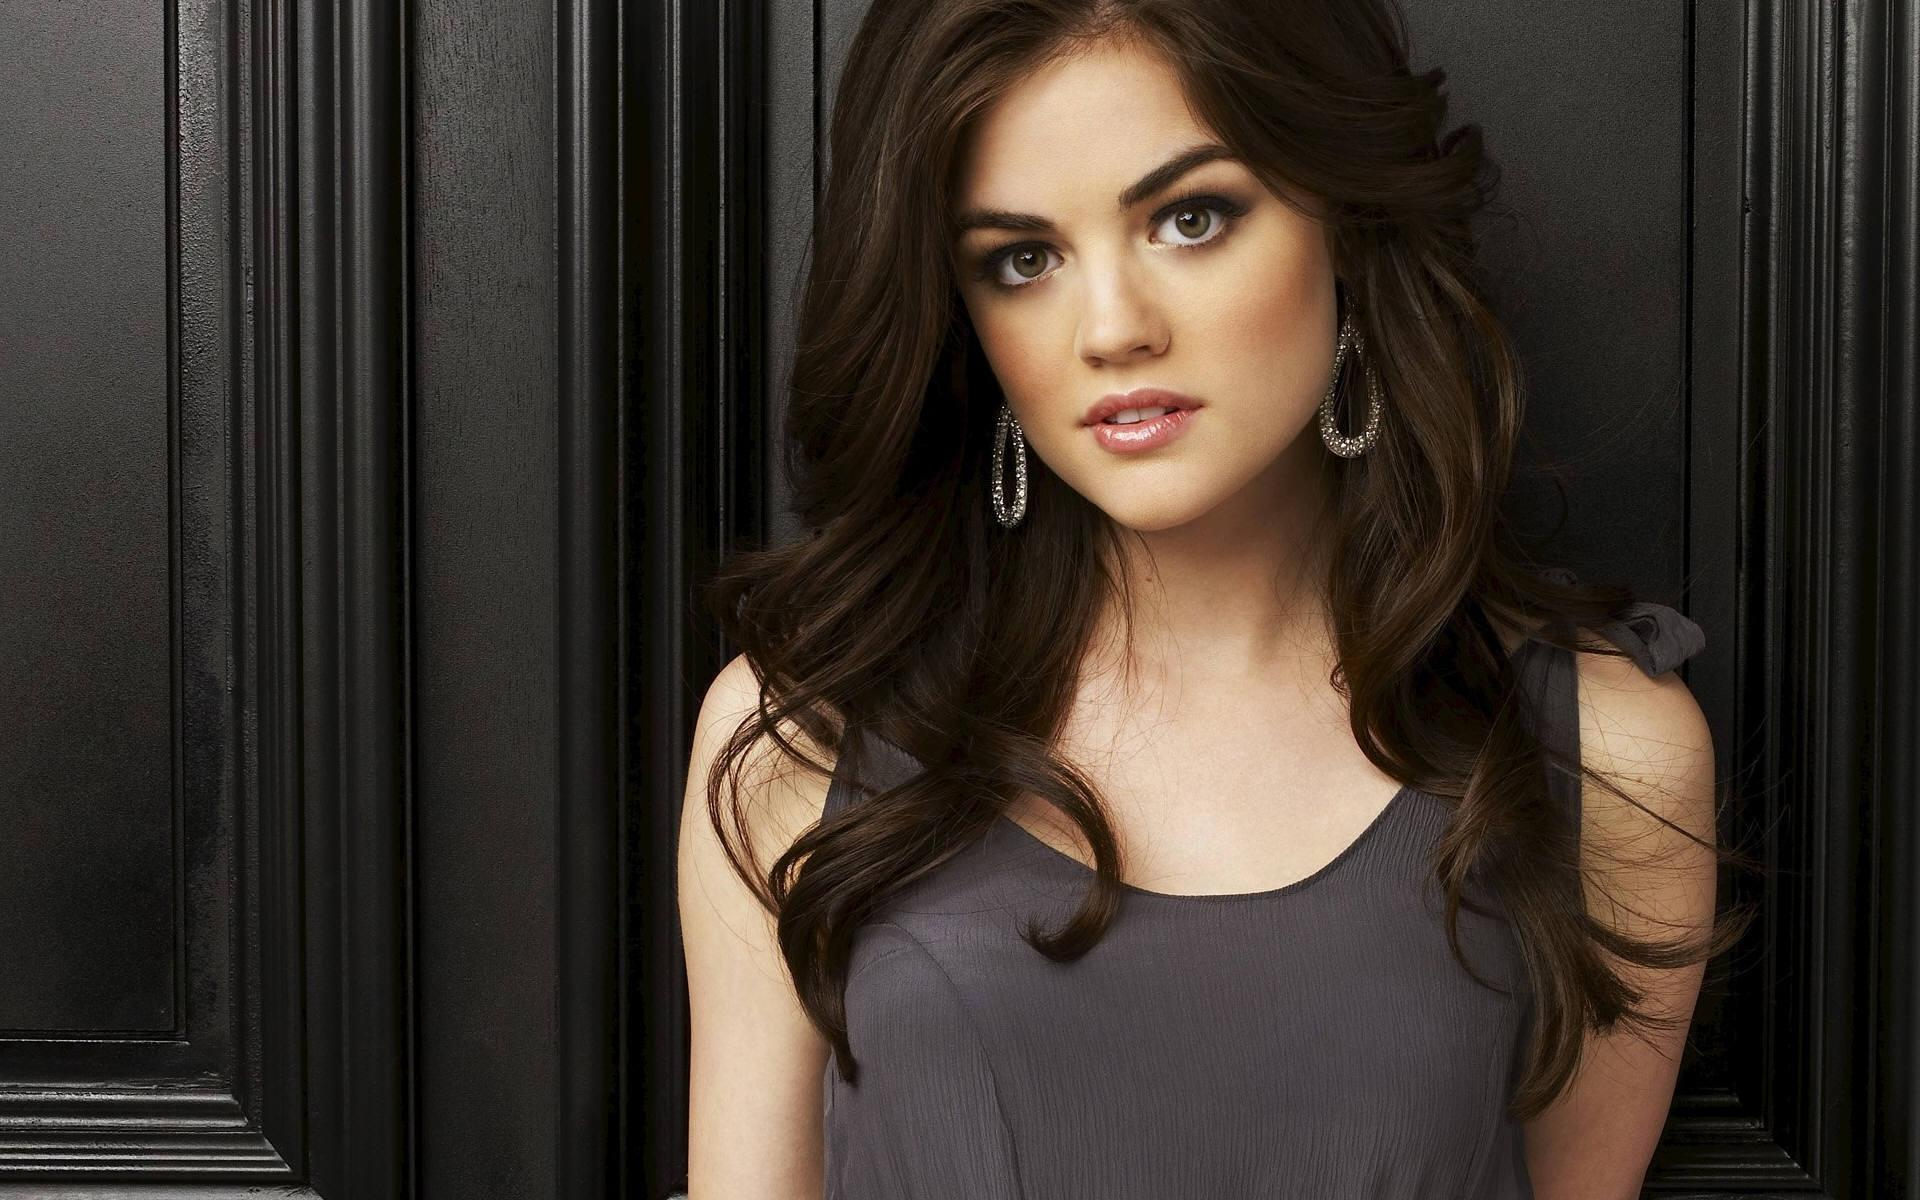 Lucy Hale Pretty Little Liars - wallpaper.